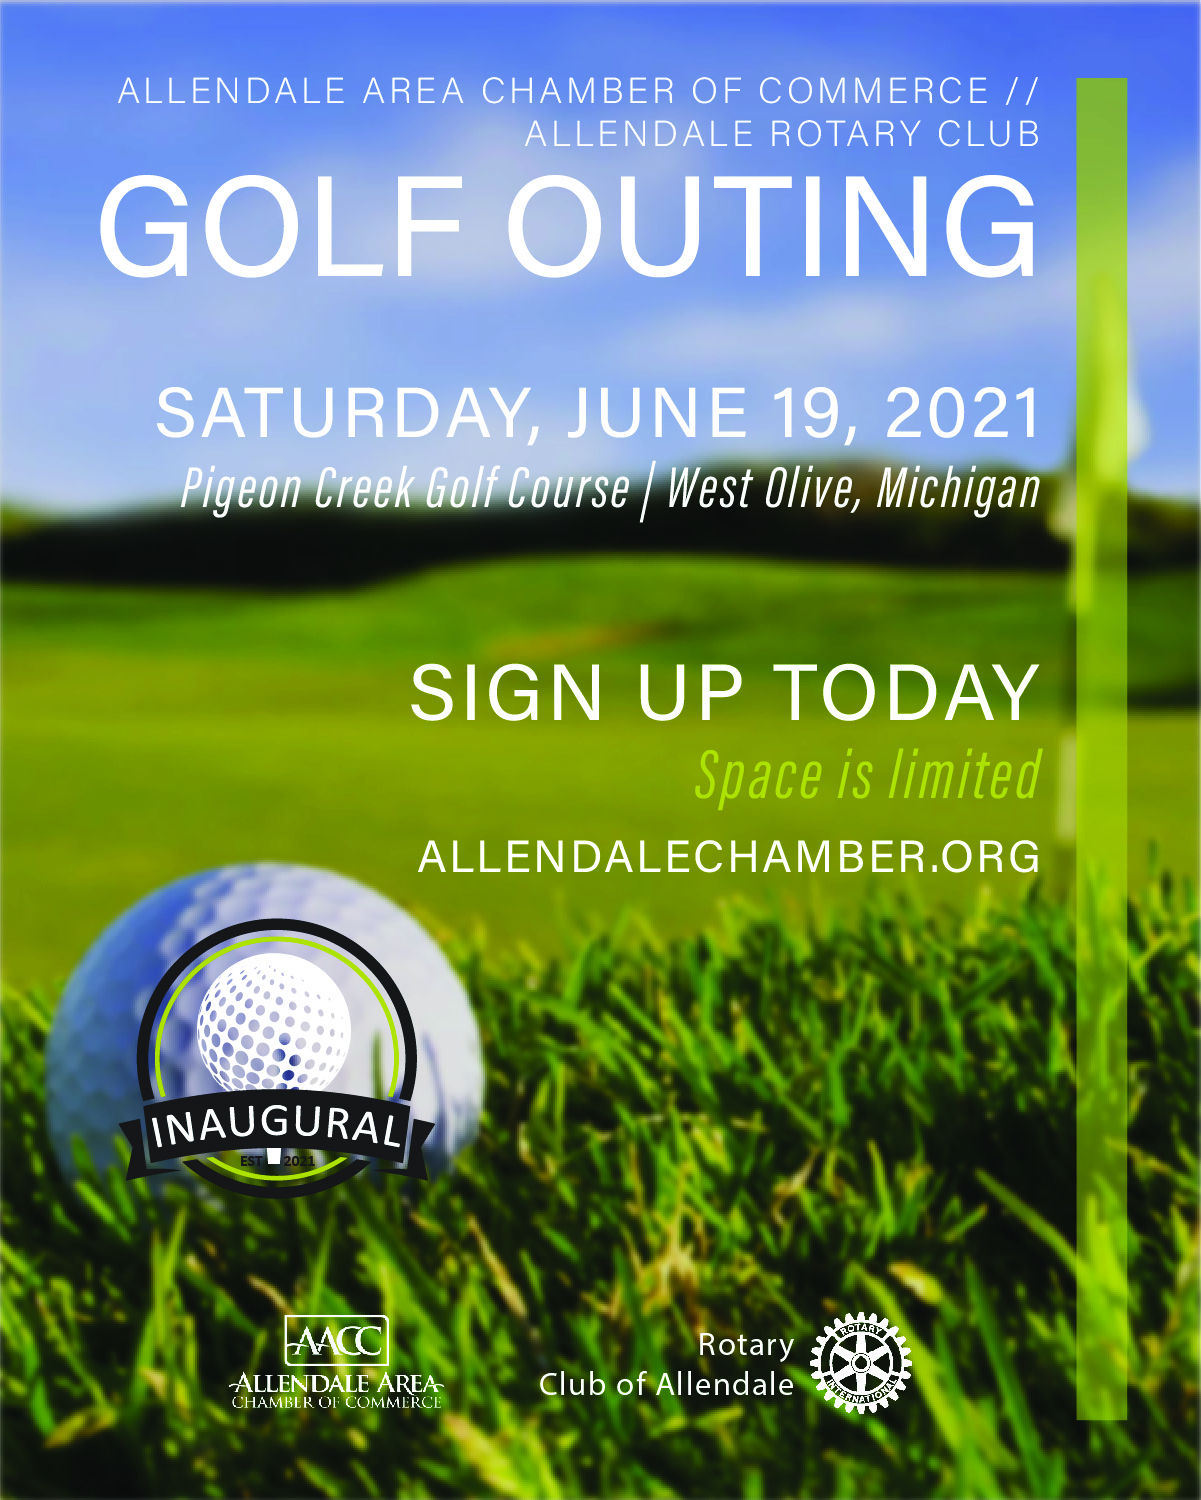 Inaugural Allendale Chamber//Rotary Golf Outing 2021